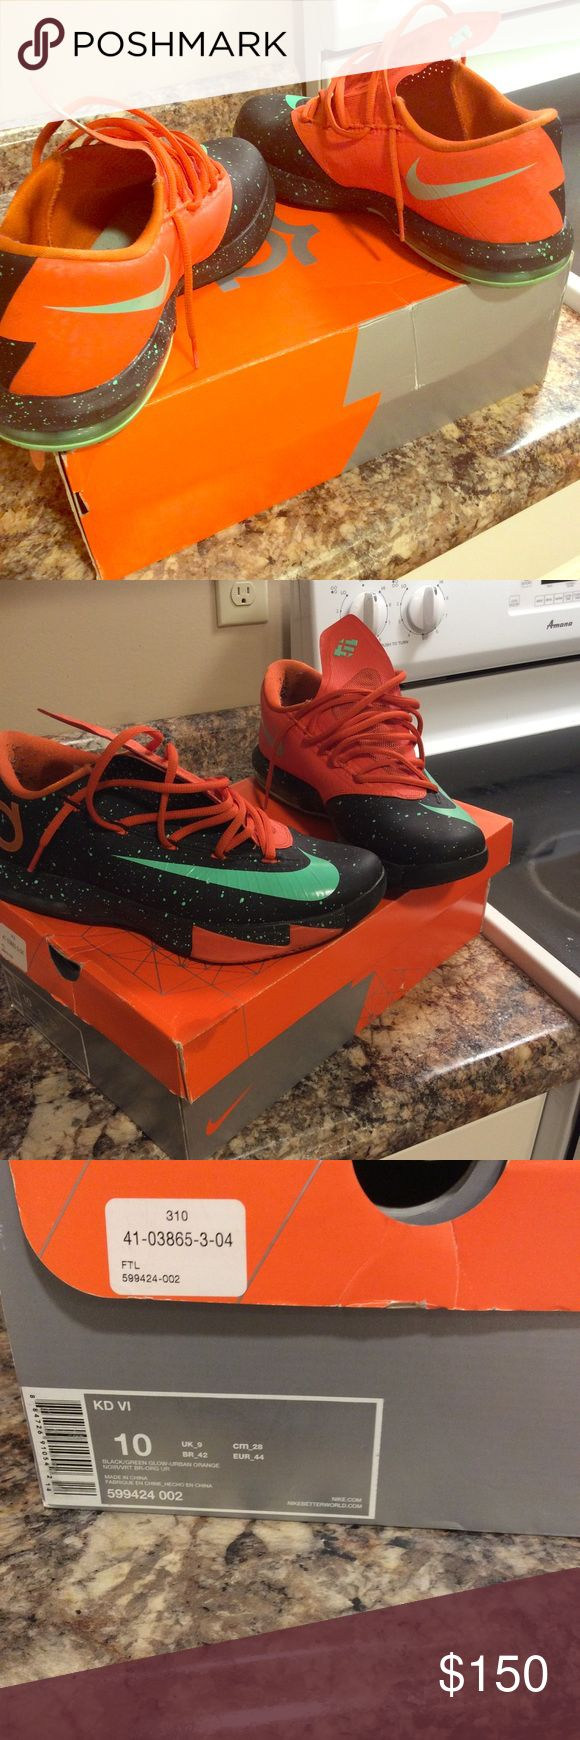 Nike KD Vi Texas black/green glow Here we have a pair of Men's Nike KD VI. These Sneakers are in mint condition. They were worn only two times. Feel free to ask for more pictures. Buy with confidence Nike Shoes Sneakers